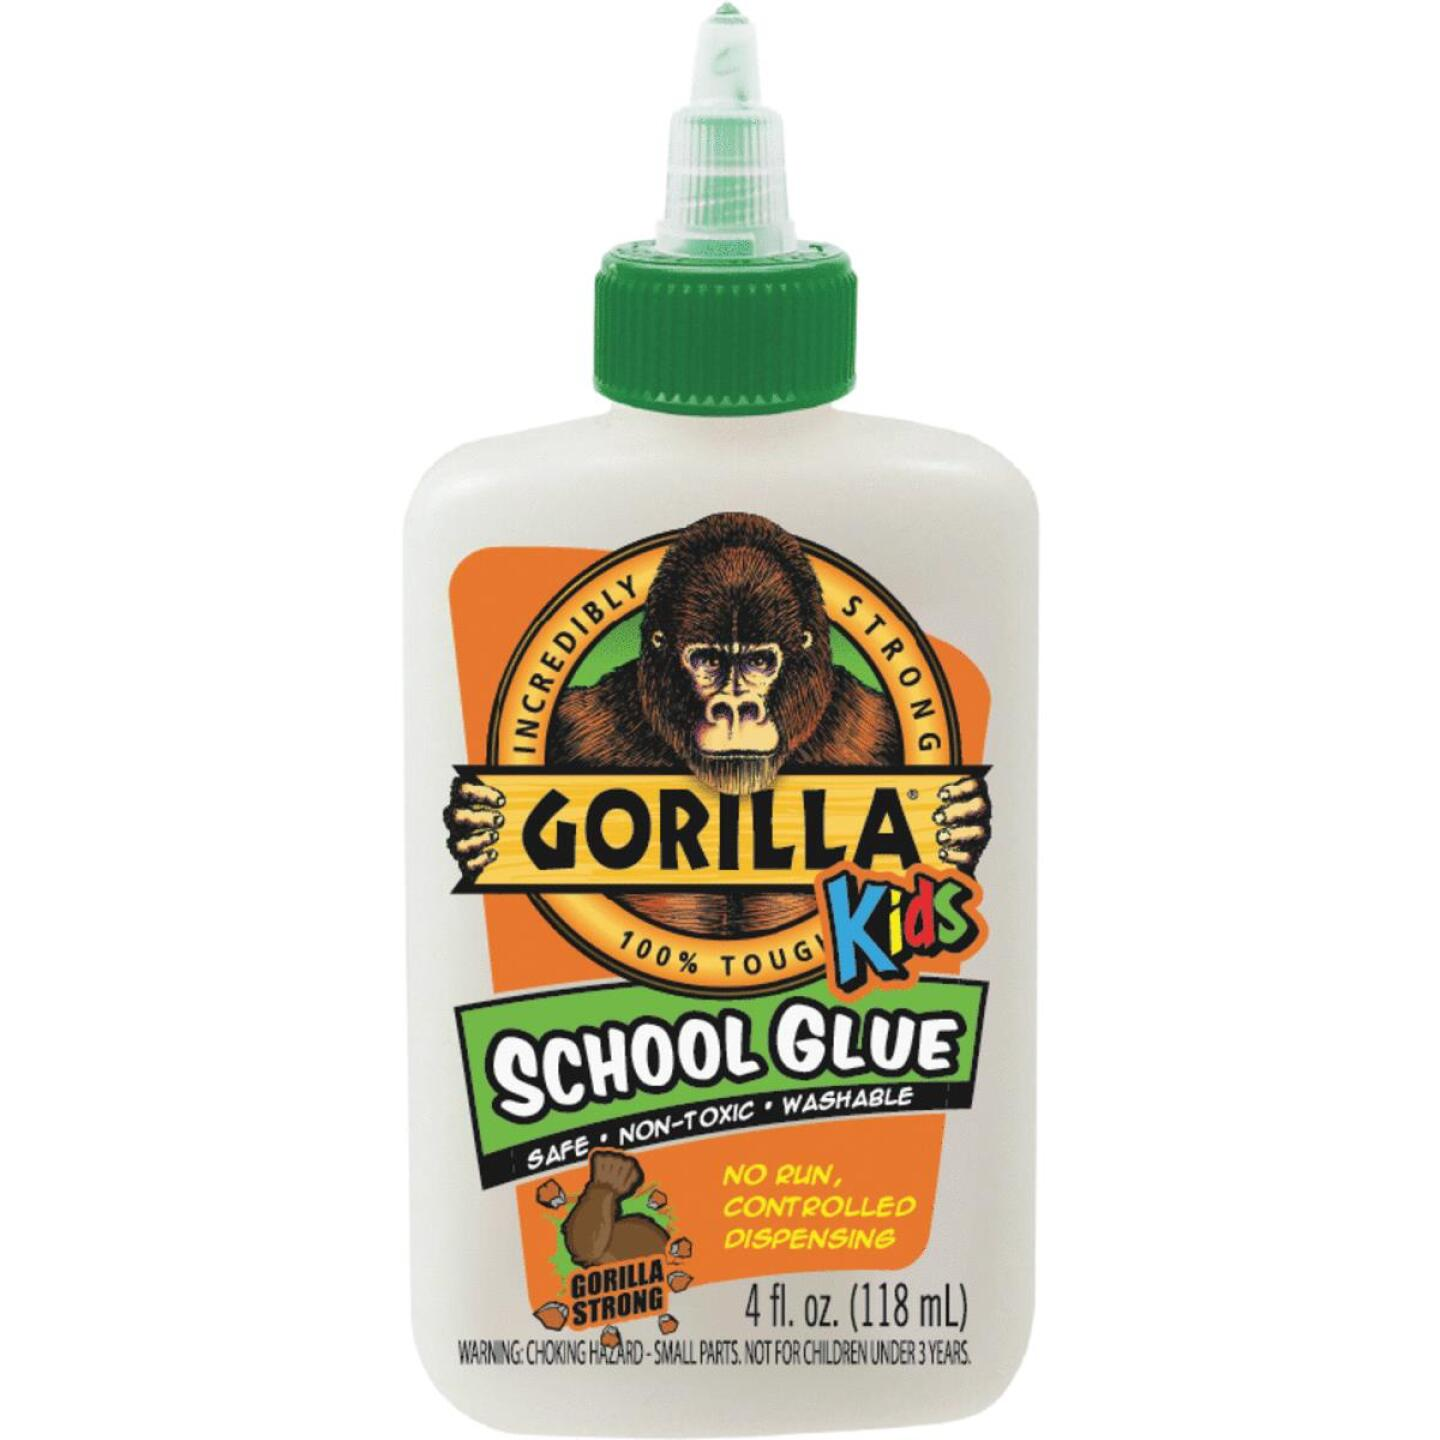 Gorilla 4 Oz. White Drying School Glue Image 1